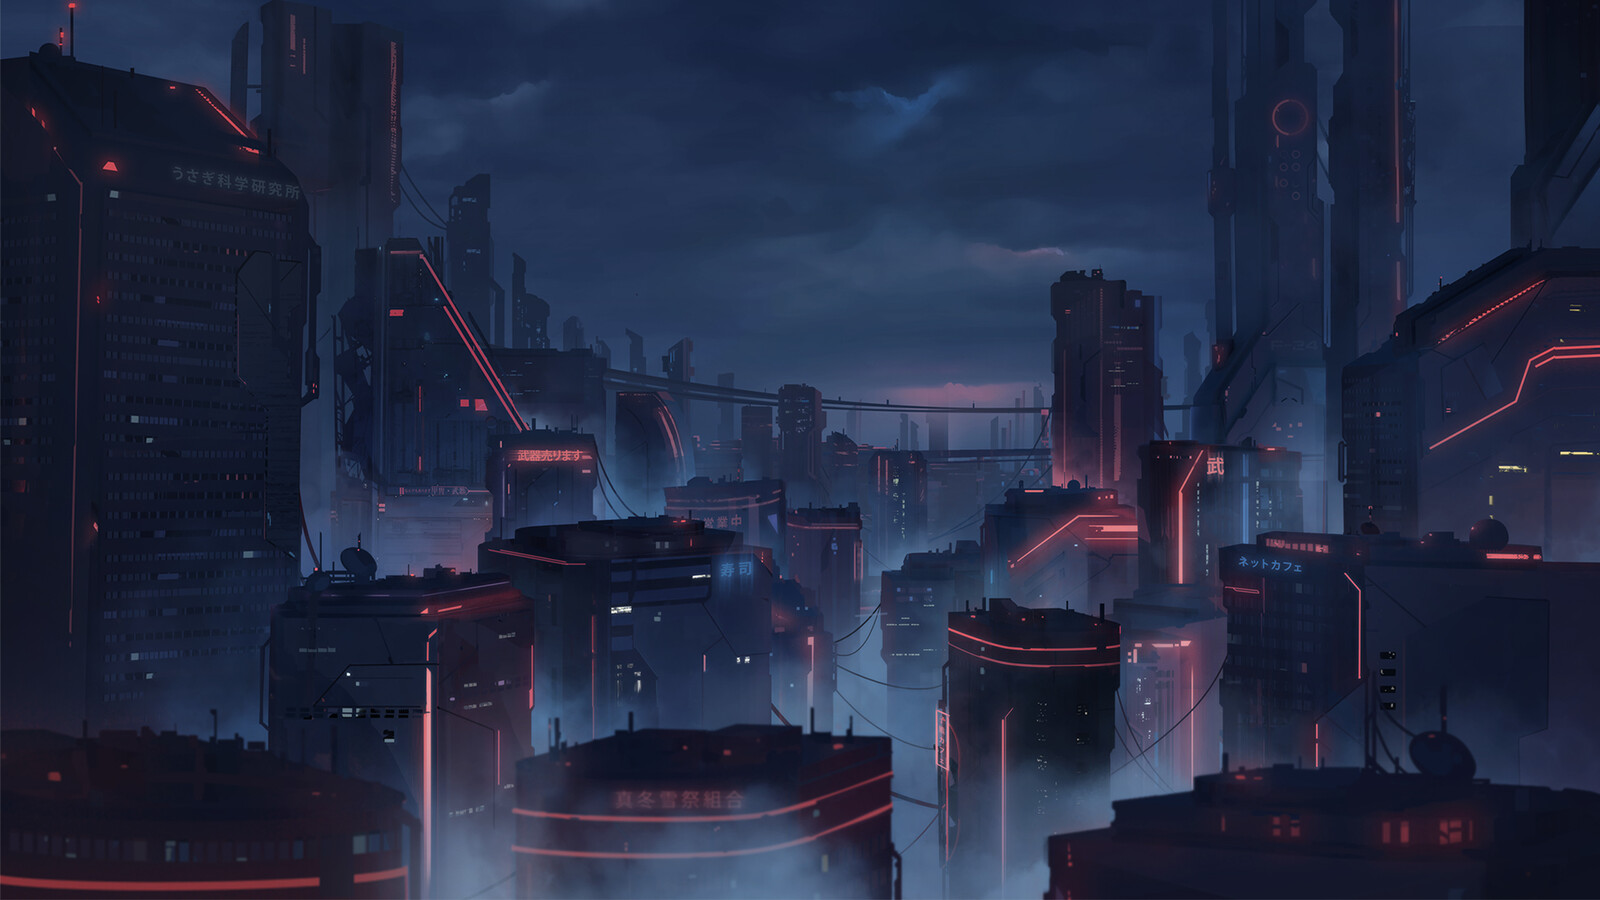 Matte Painting I did after some explorations and rounds